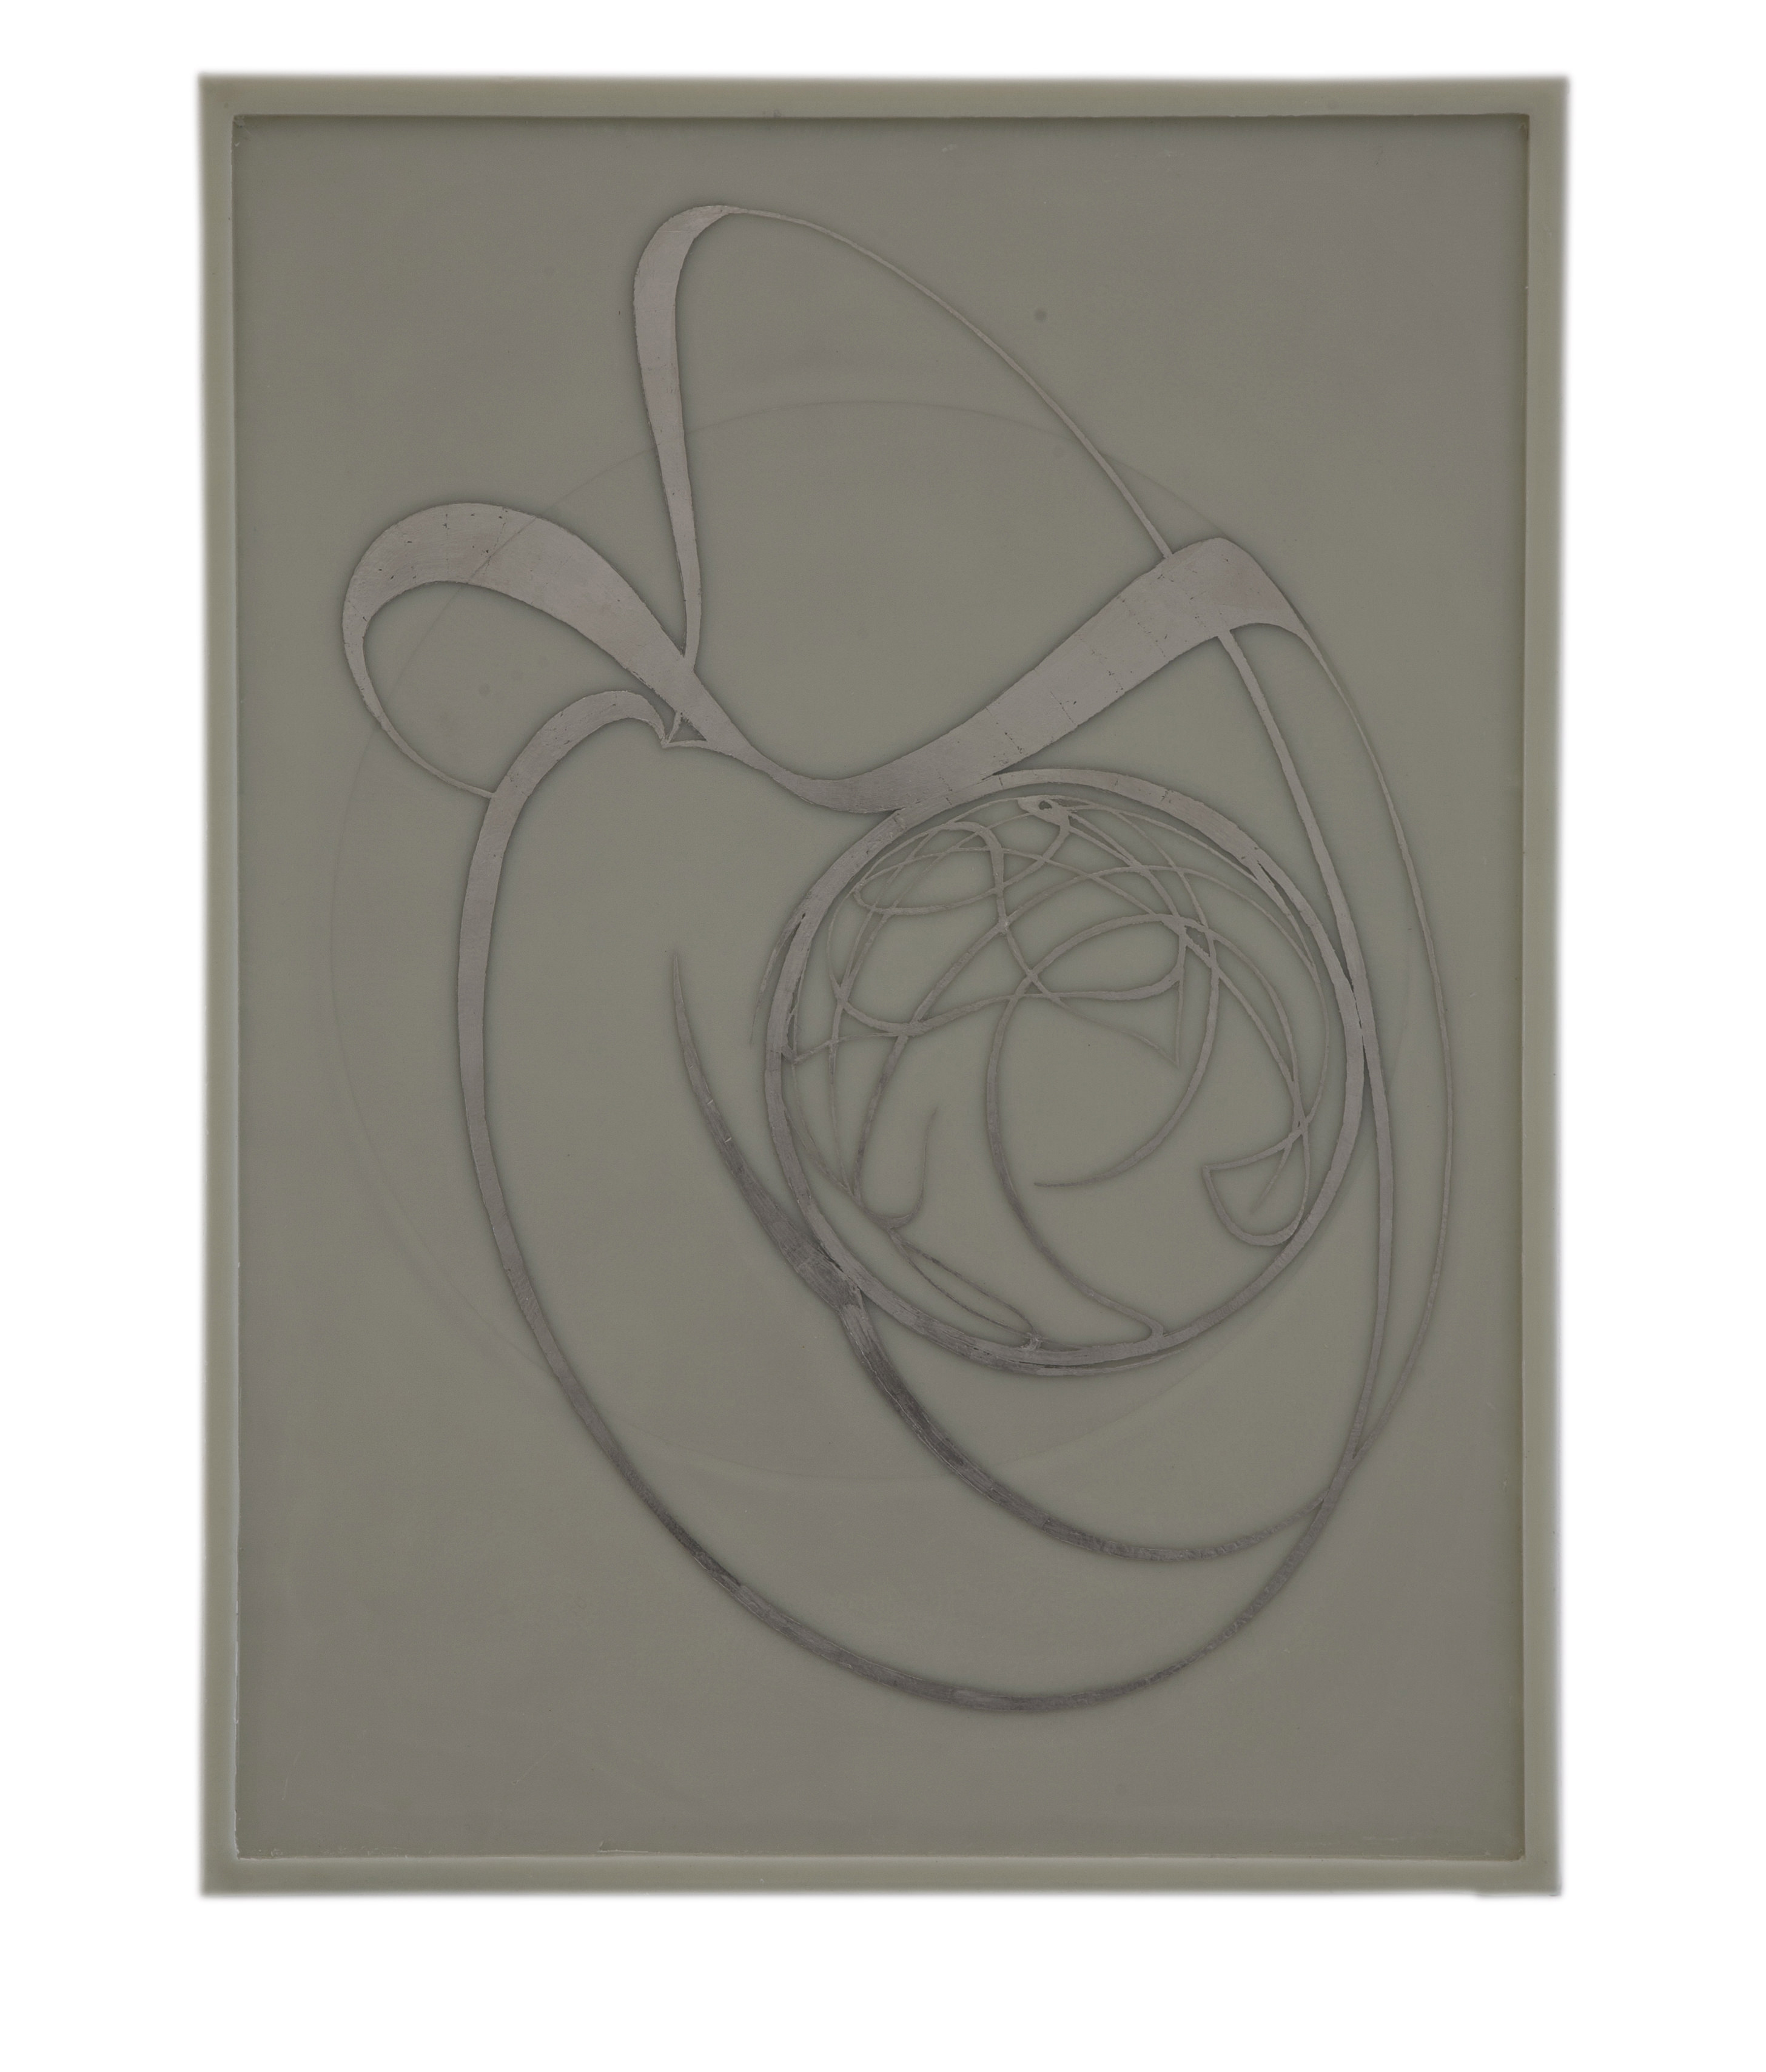 Bianchi, Untitled, wax and palladium on board and canvas, 2012, 80 x 60. B